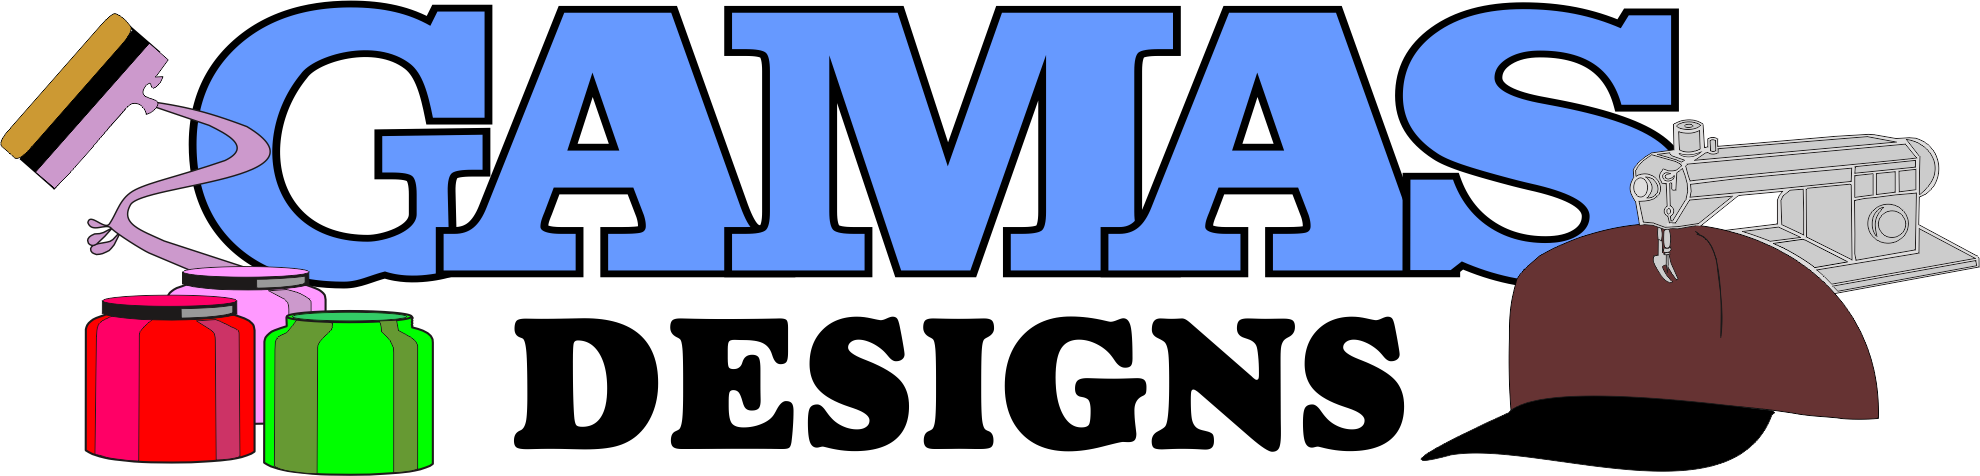 Gamas Designs | Screen Printing & Embroidery in Alaska